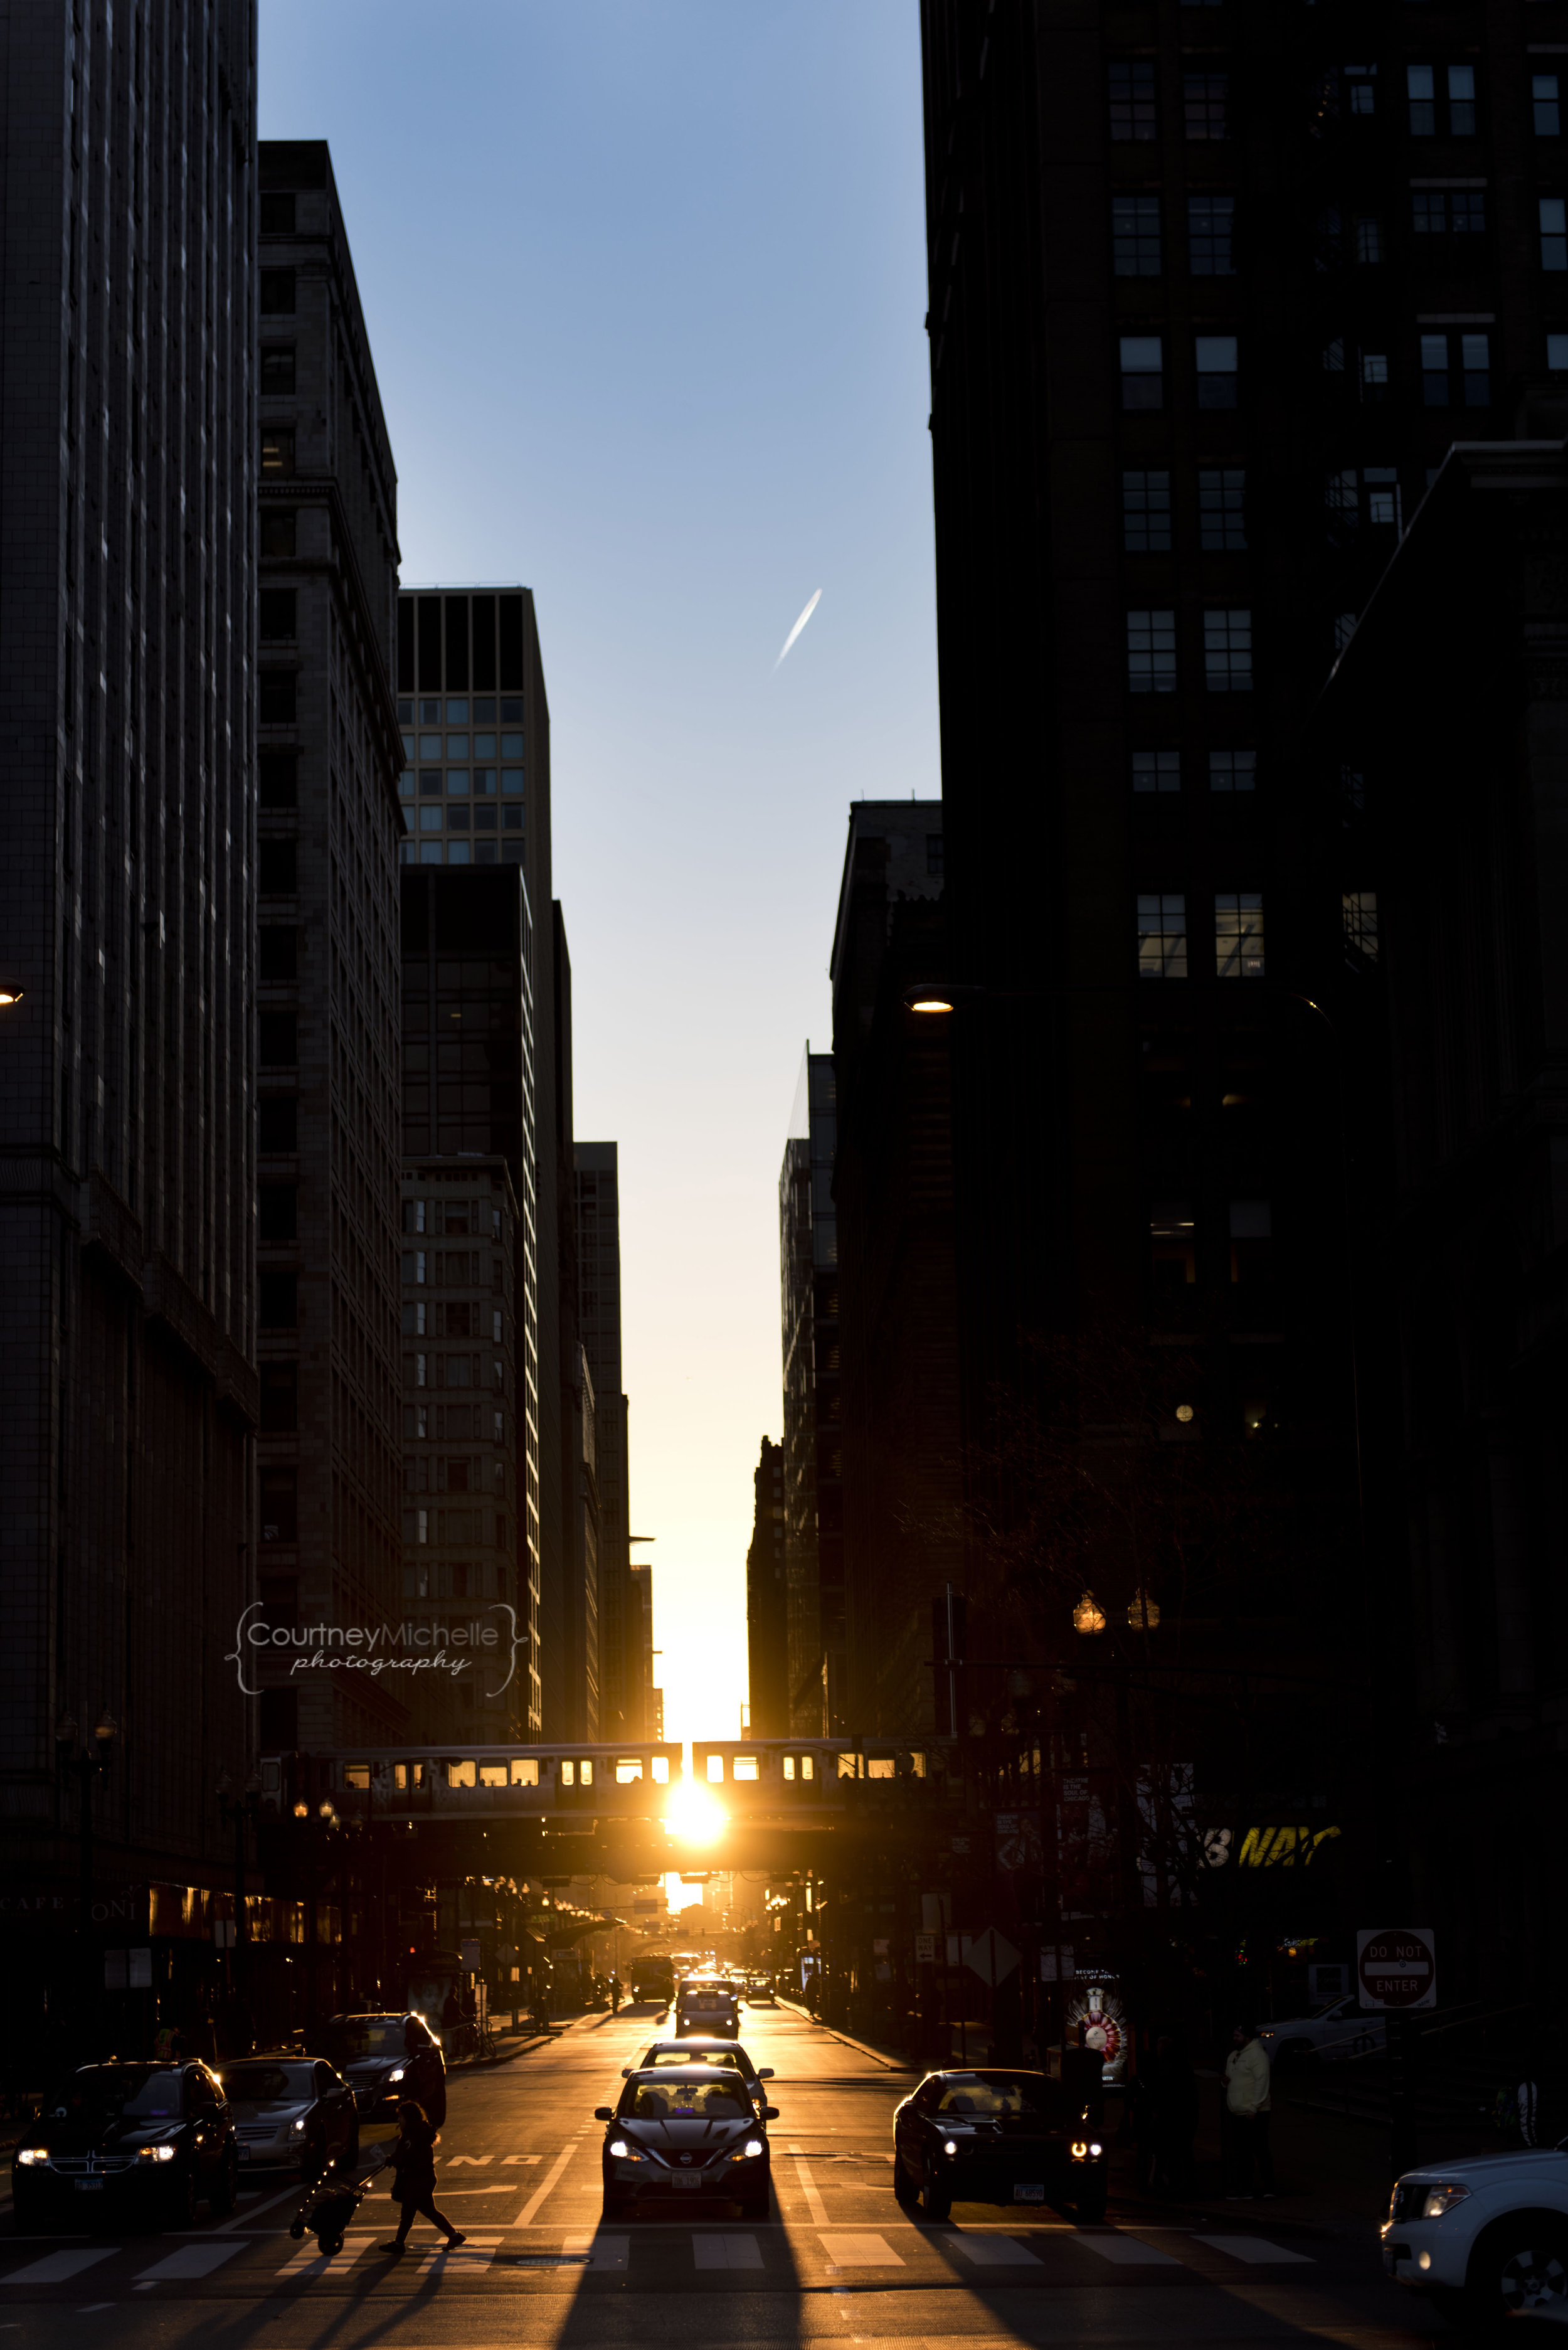 chicagohenge2019-millenium-park-courtney-laper-chicago-photographer©CopyrightCMP_2019chicagohenge-3017.jpg